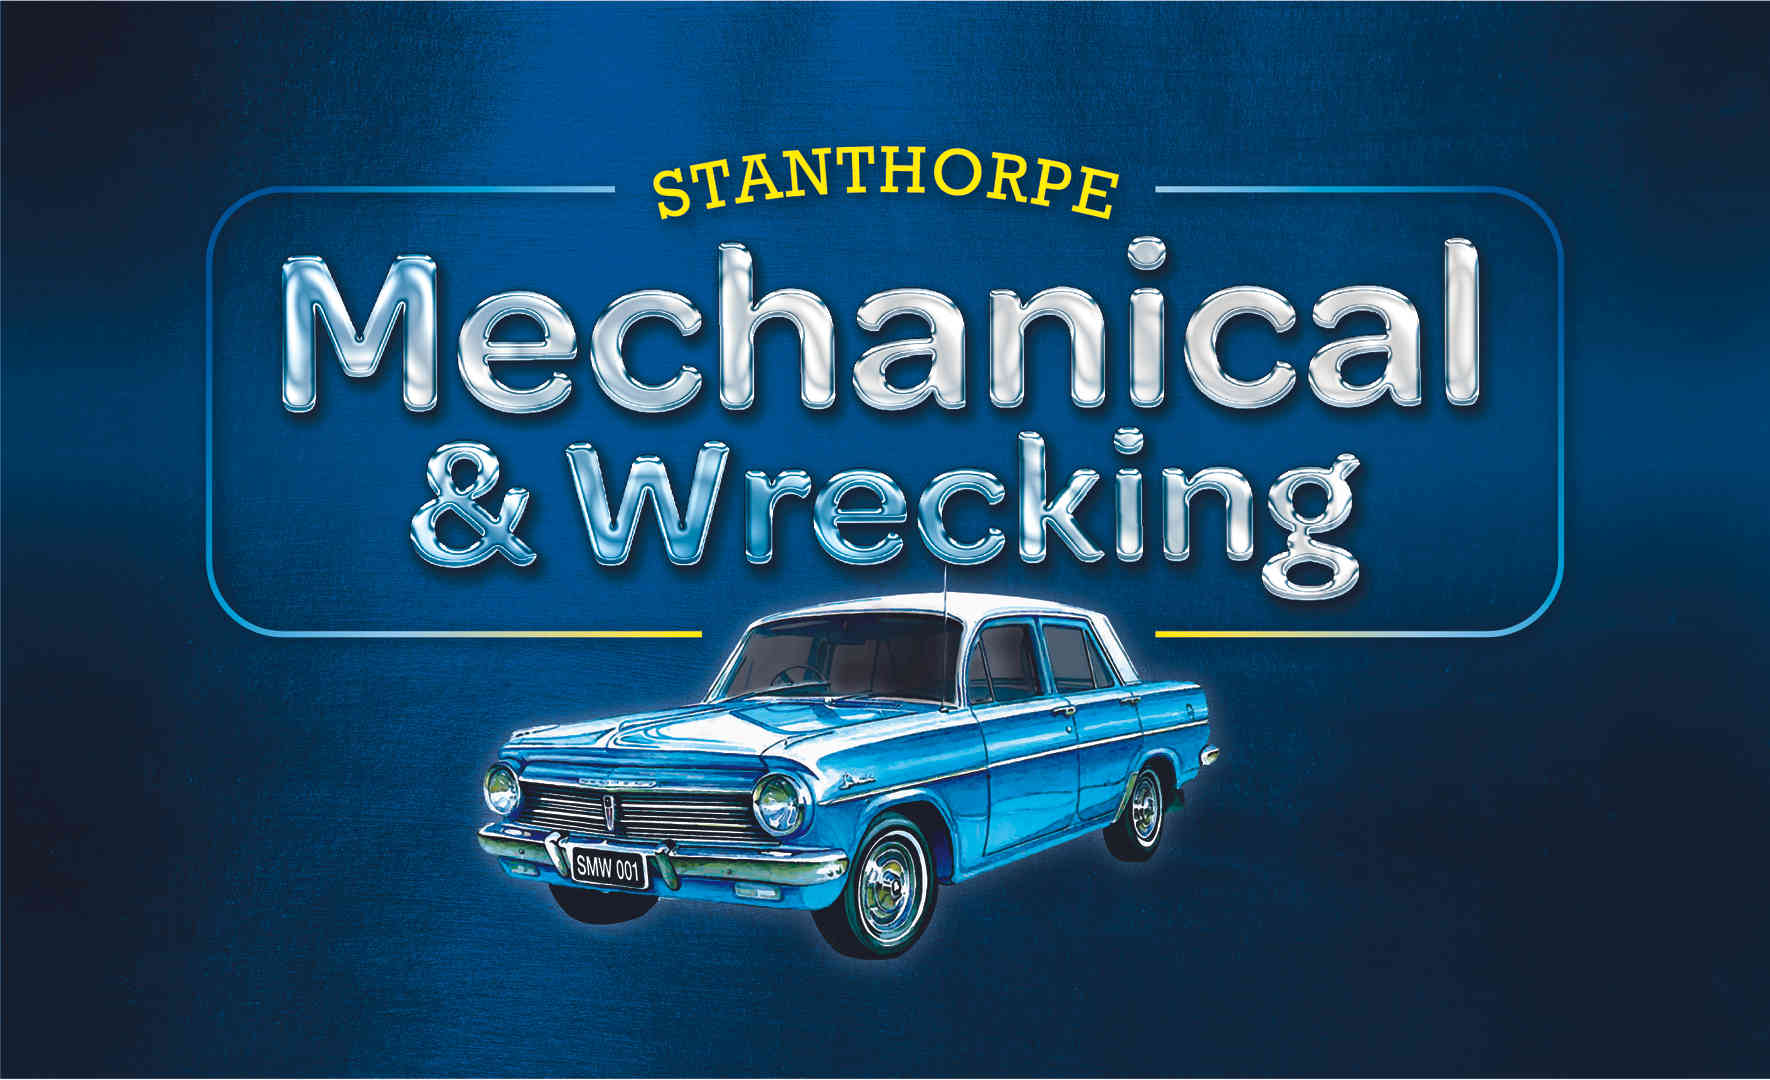 Stanthorpe Mechanical & Wreckers_LOGO.jp